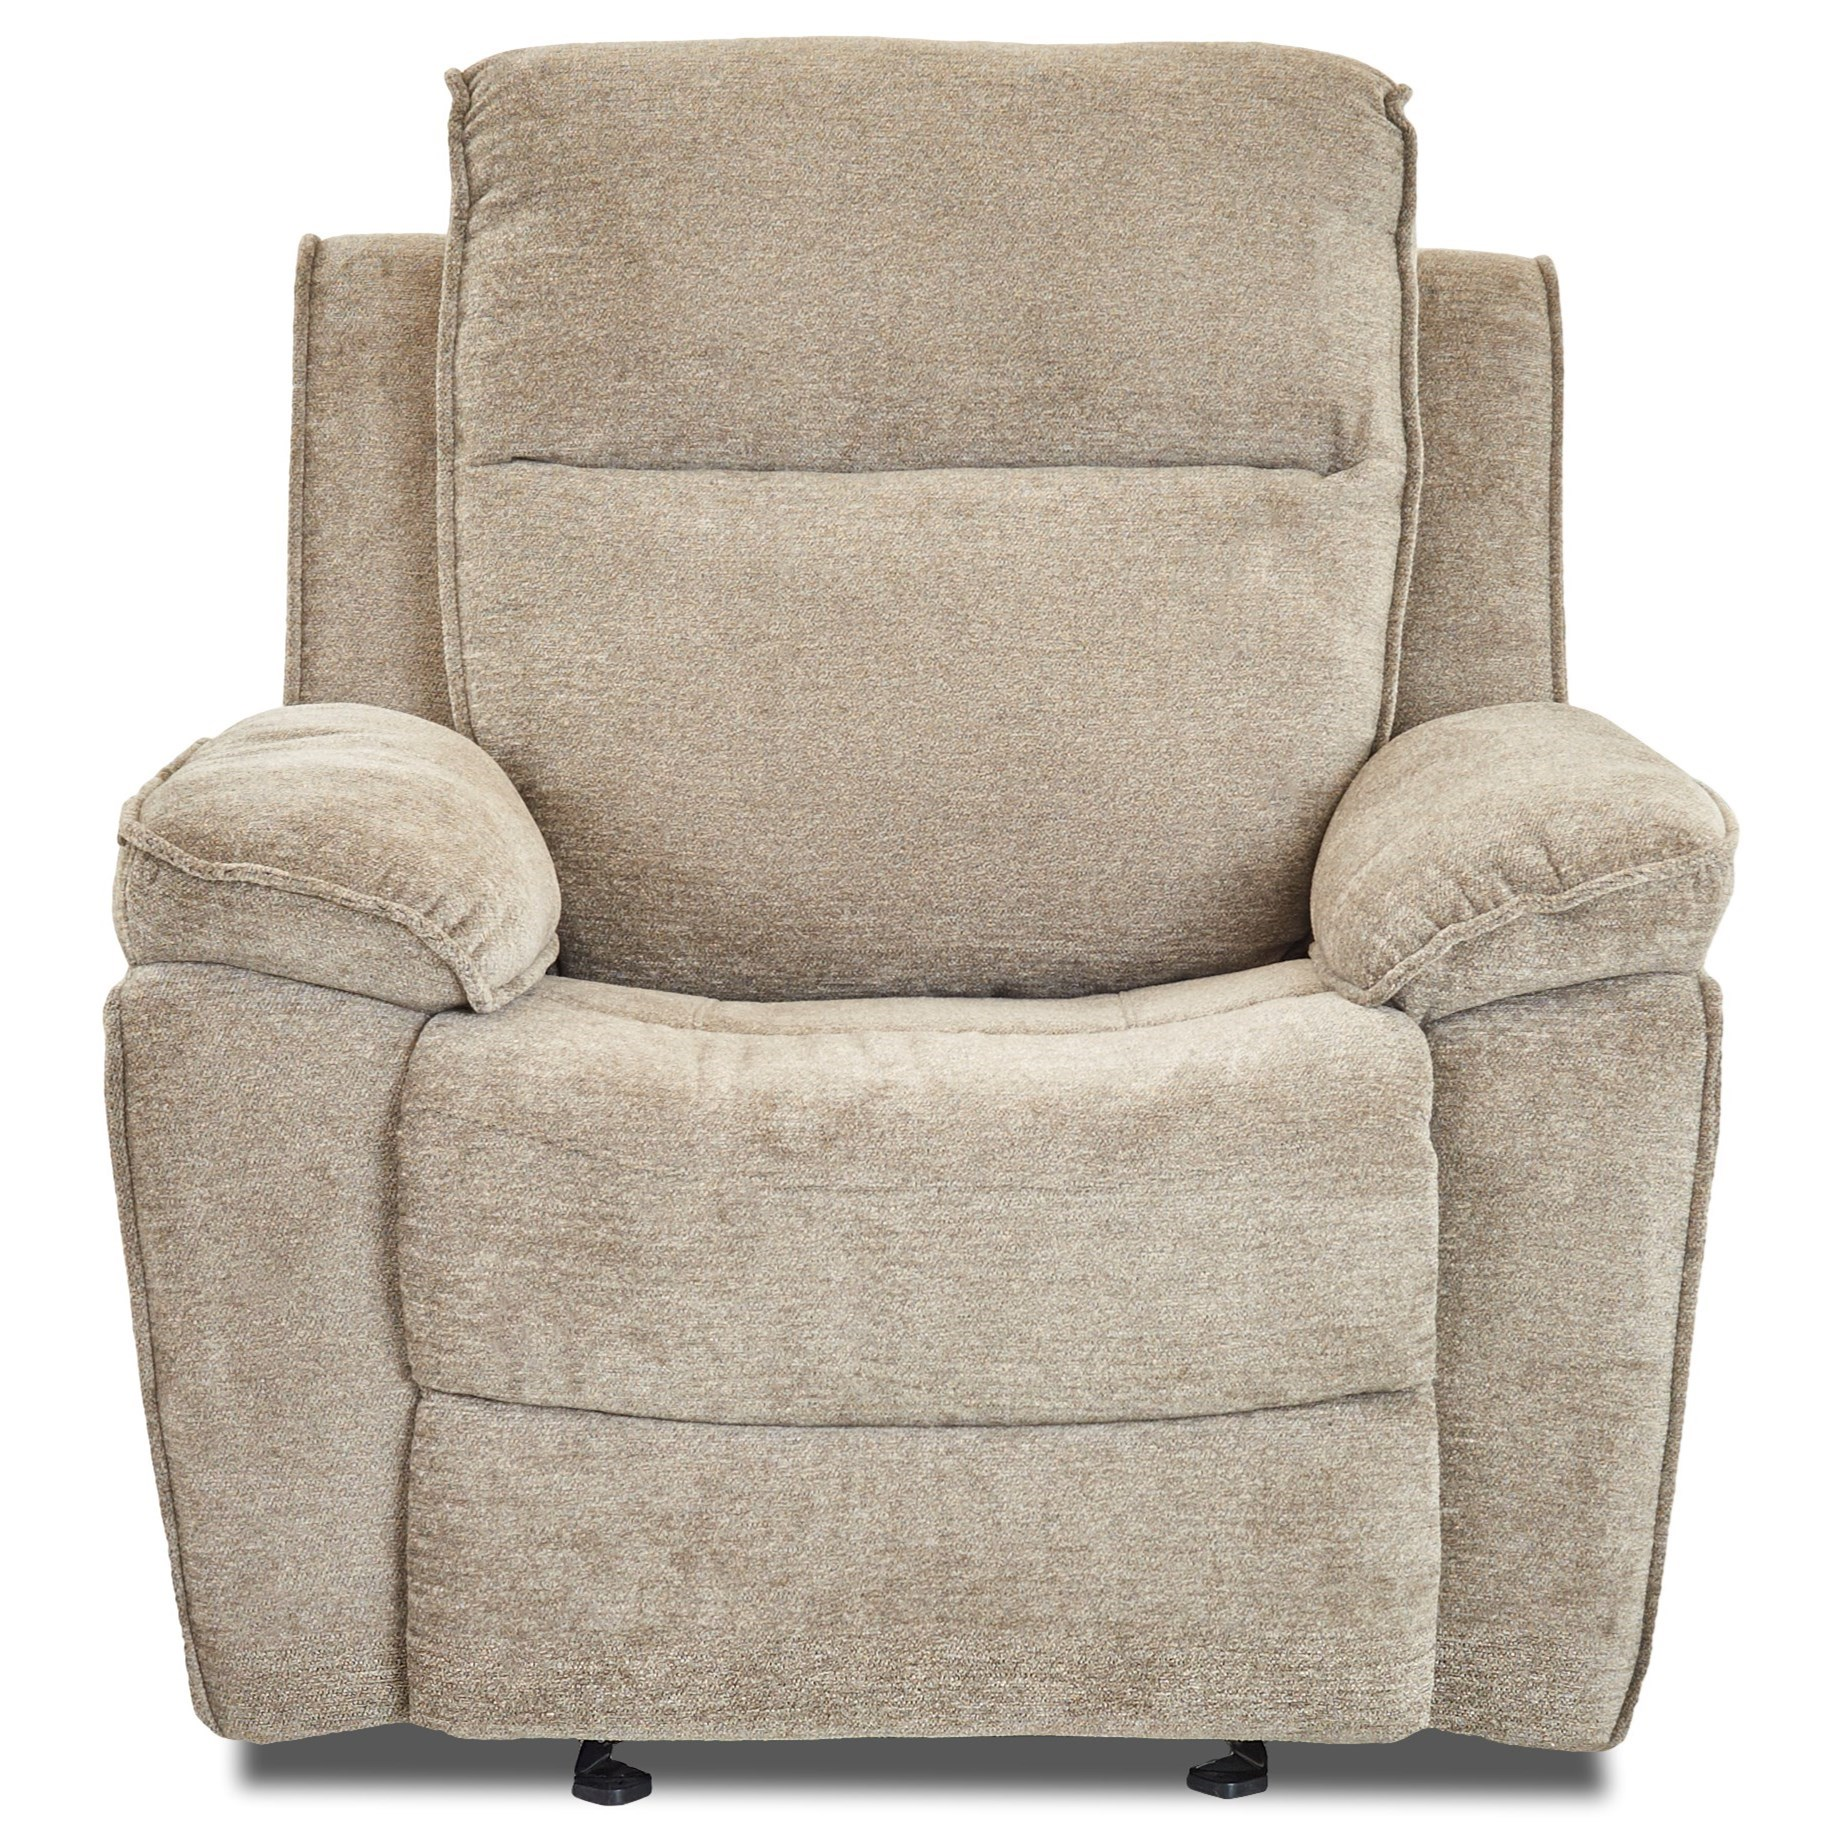 Casual Reclining Chair with Bucket Seat and Pillow Arms